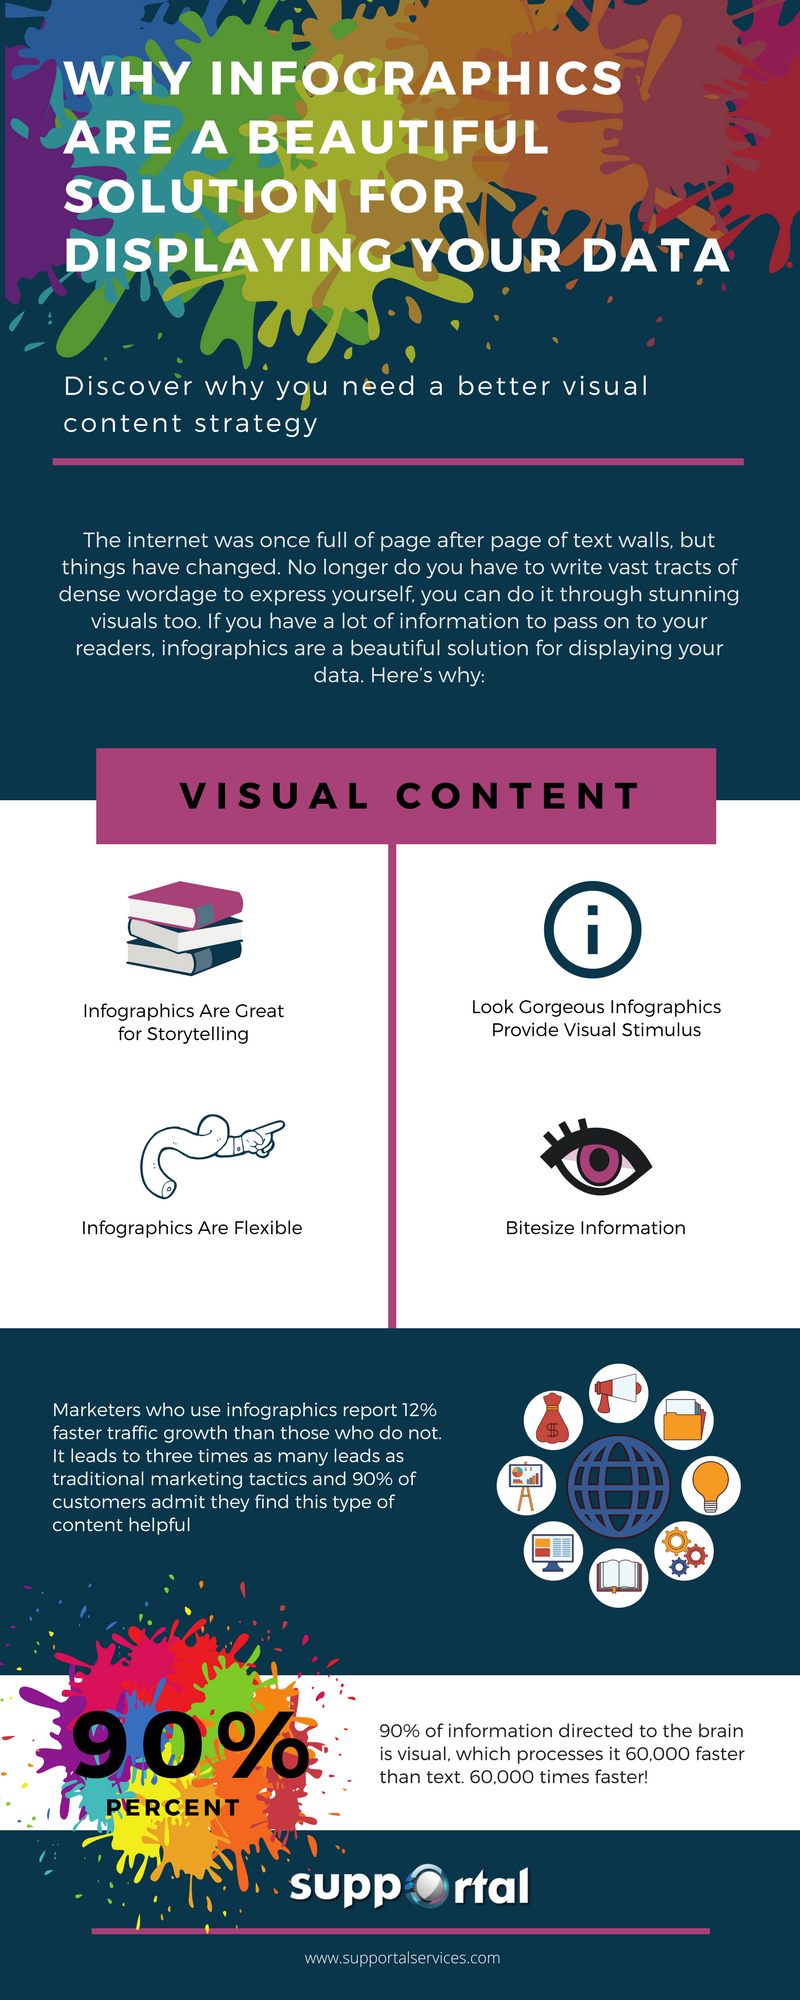 Why Infographics are Perfect for Displaying Your Data Supportal